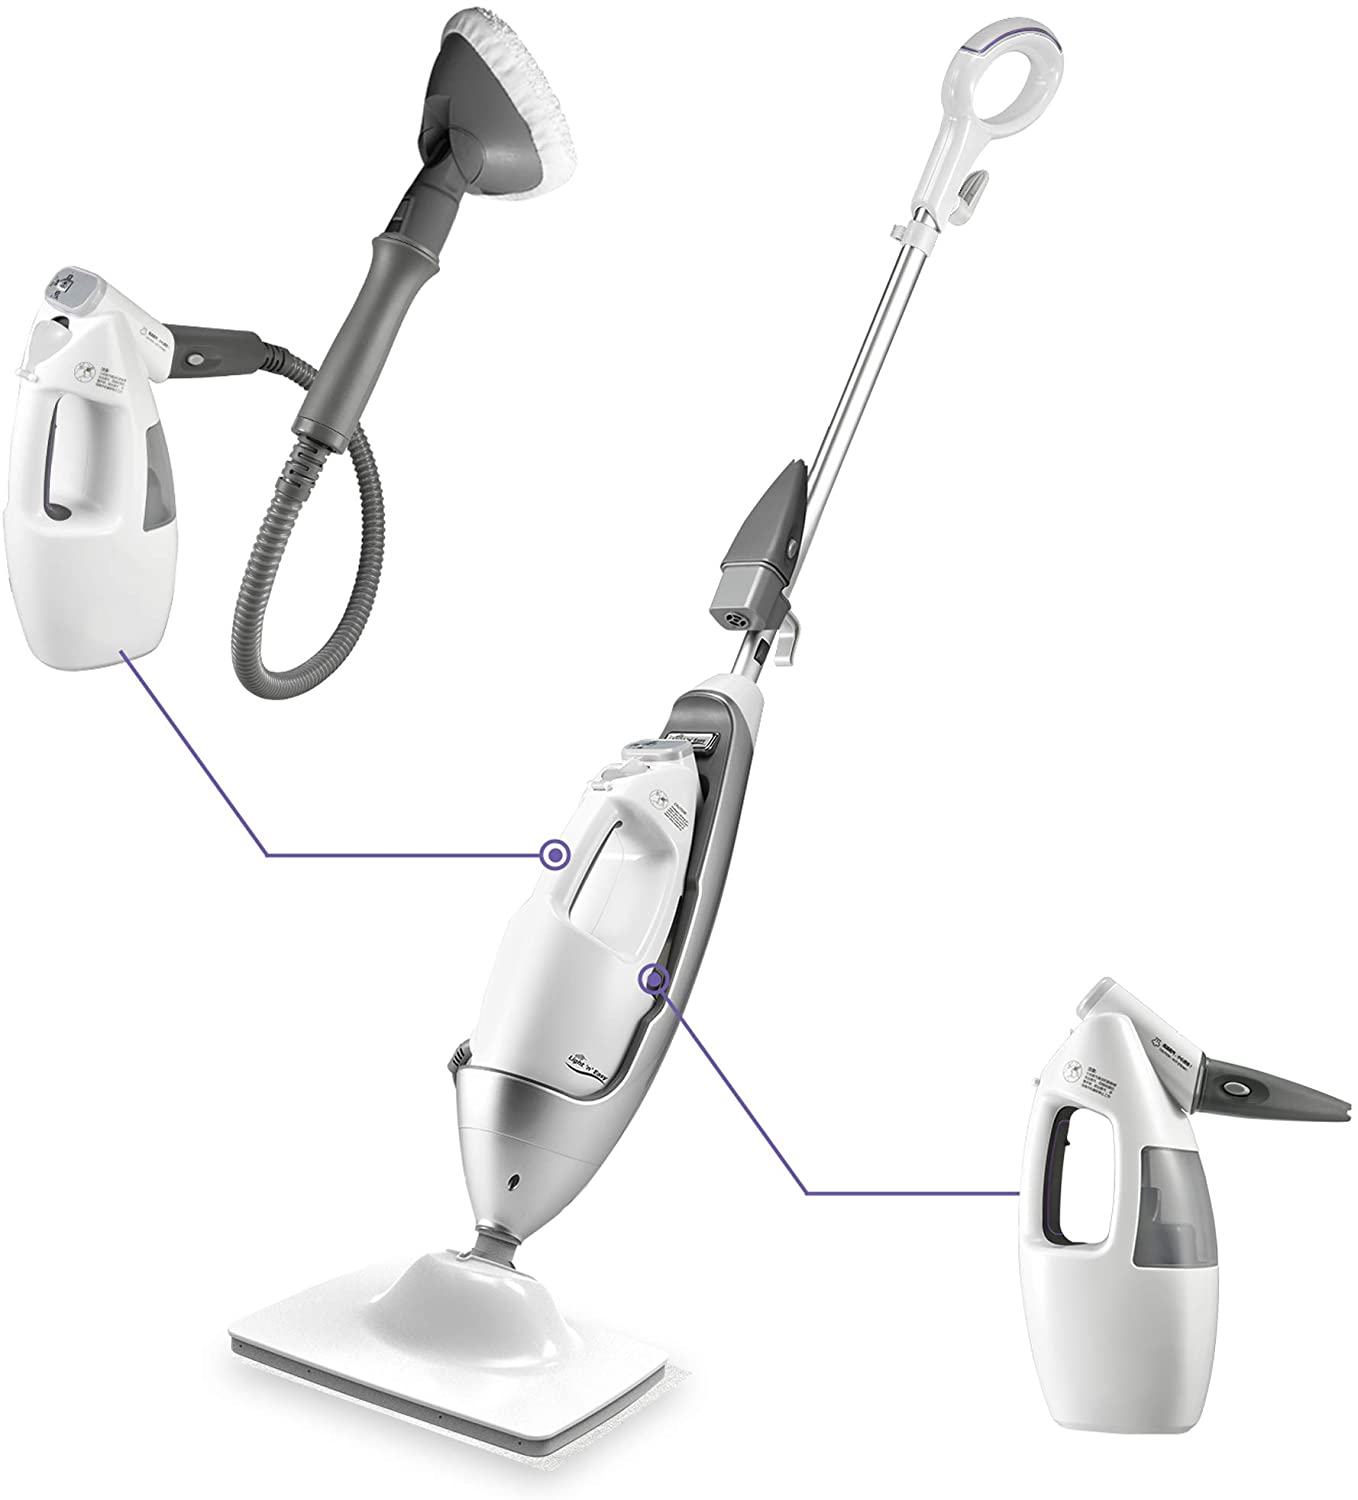 LIGHT 'N' EASY Multi-Functional steam mop Steamer